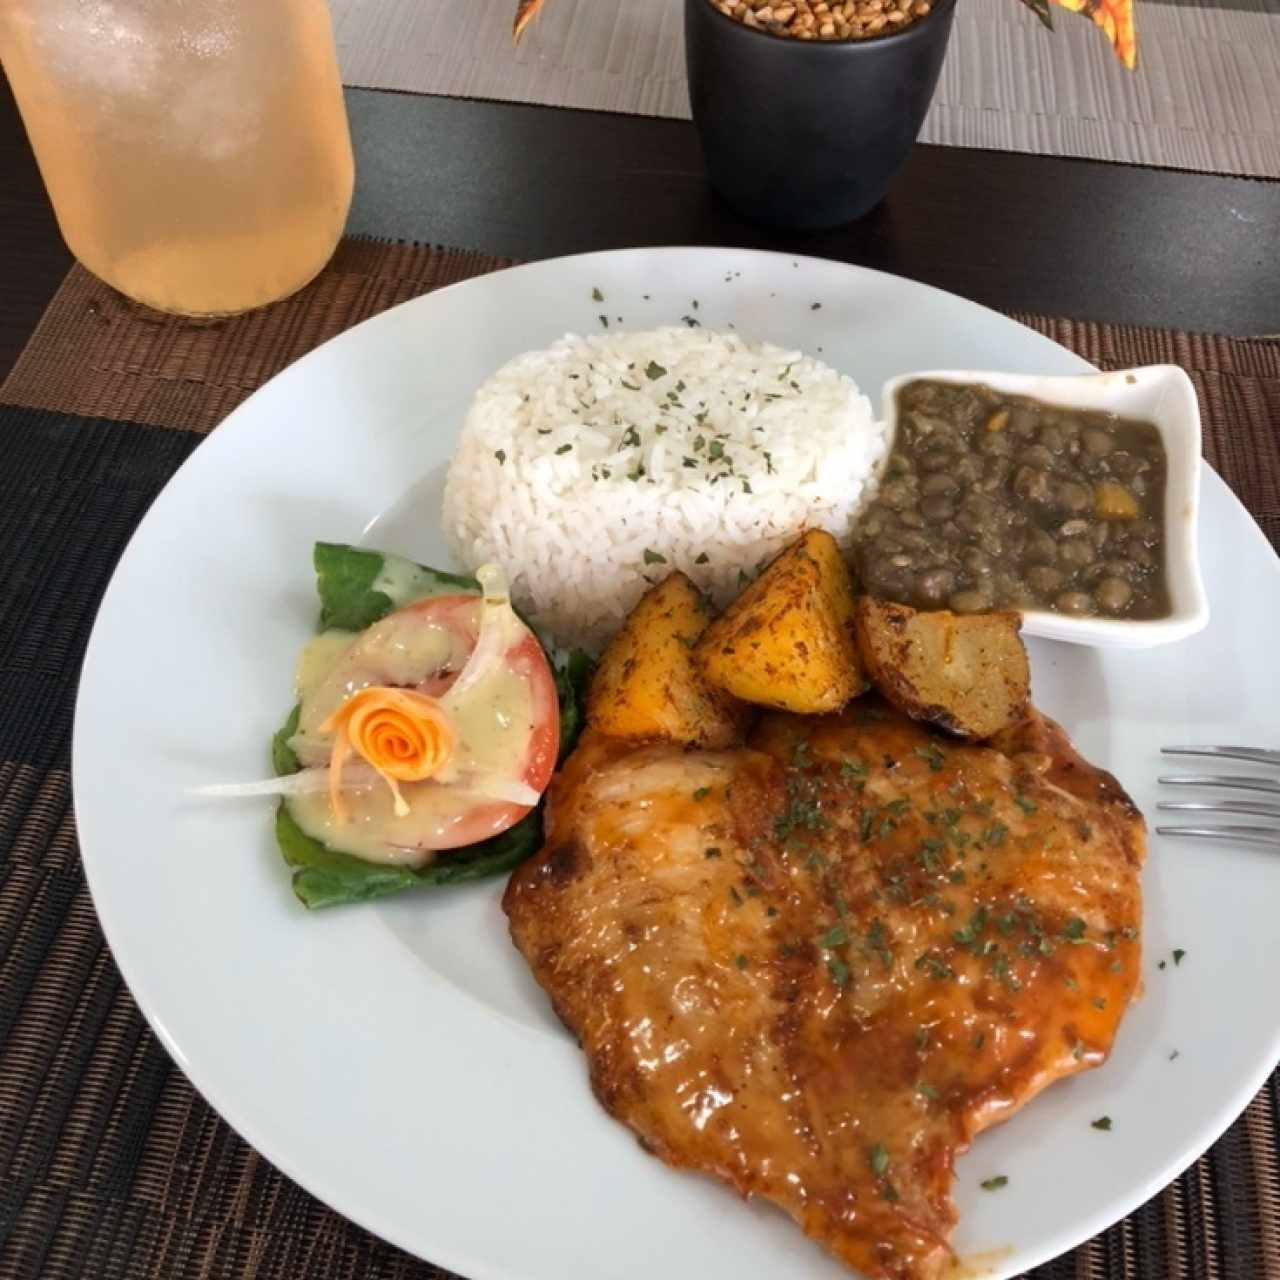 Filete de pollo